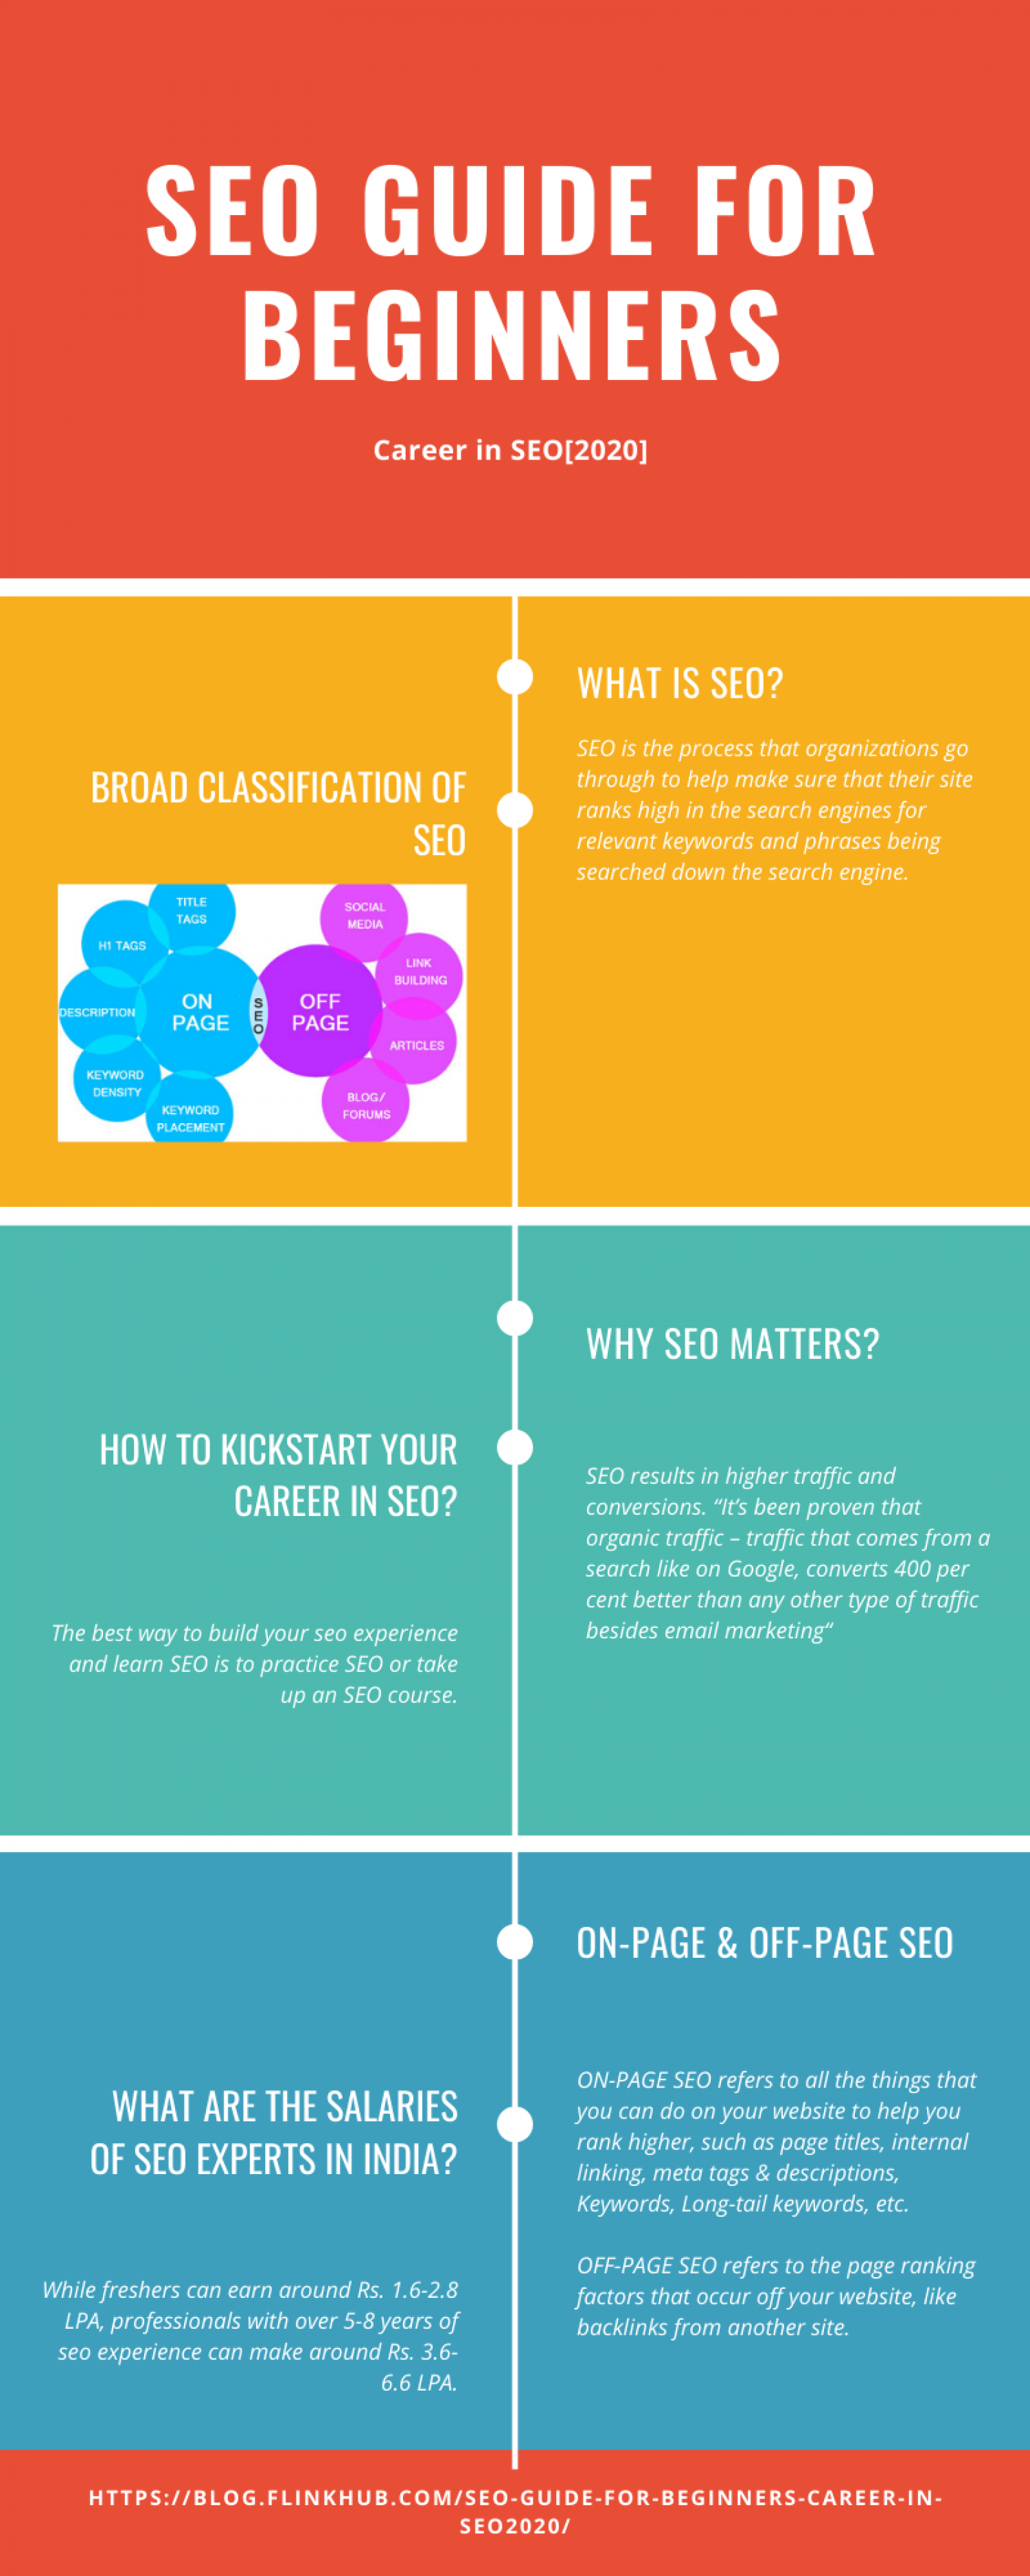 SEO GUIDE FOR BEGINNERS Infographic